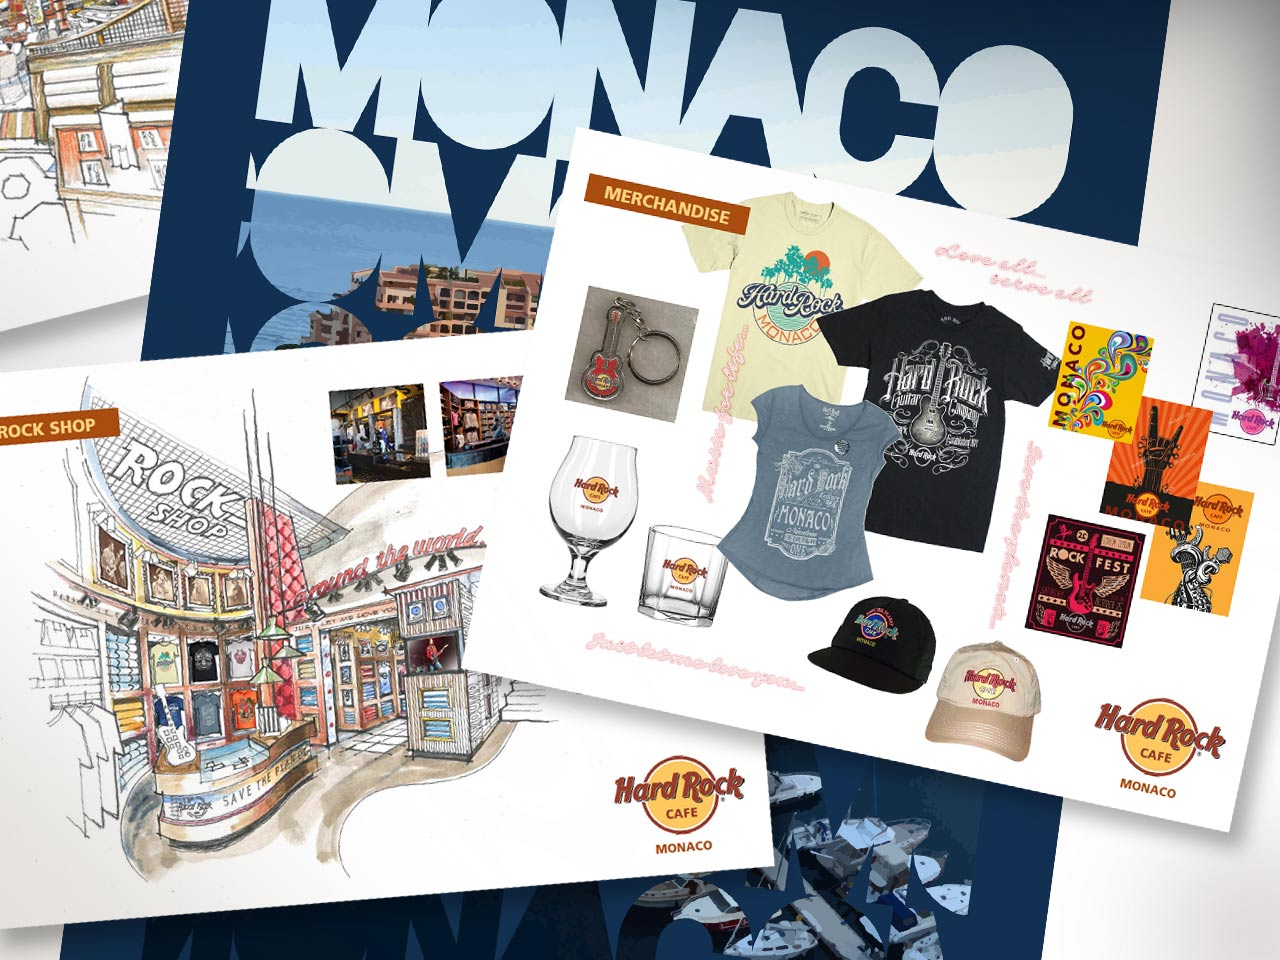 Hard Rock Café merchandising visuals